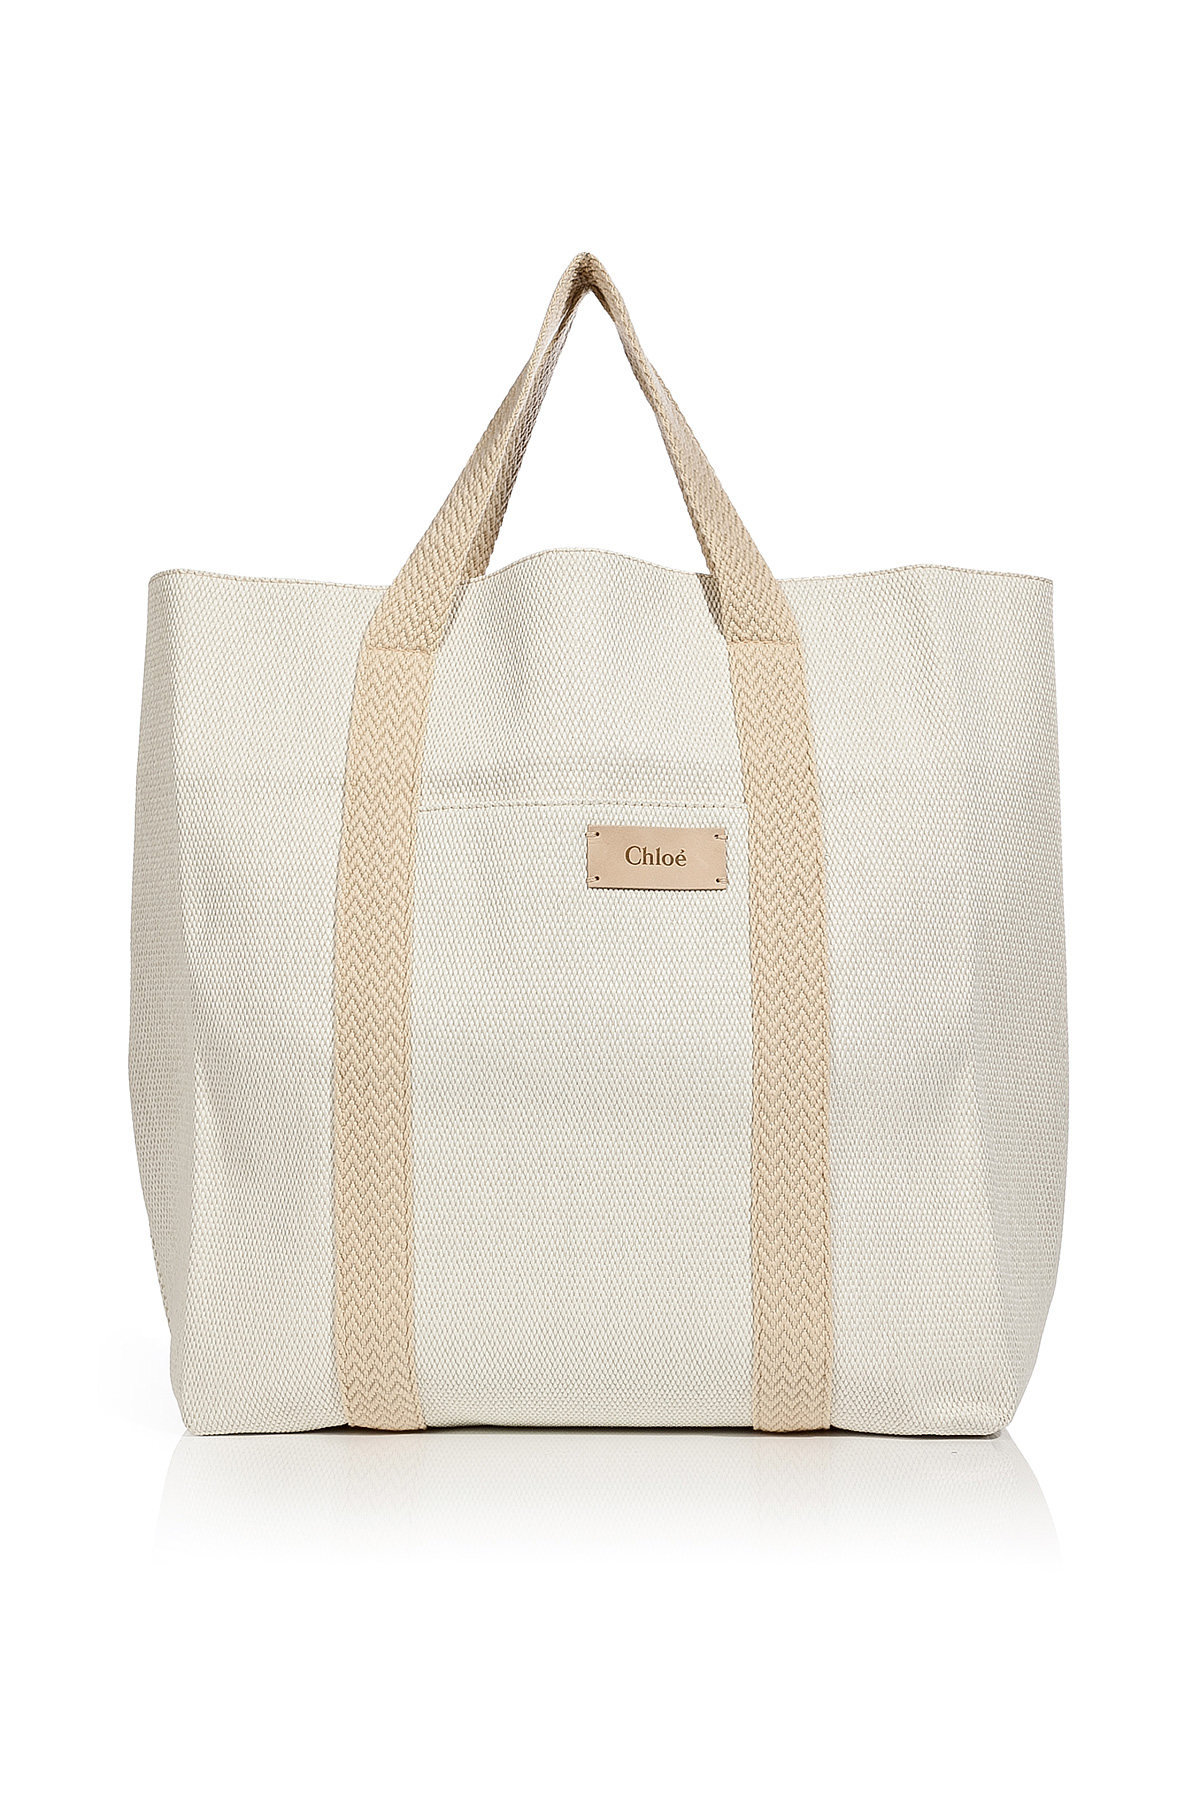 Chloé Cream Cotton Blend Oversized Beach Tote in Natural | Lyst